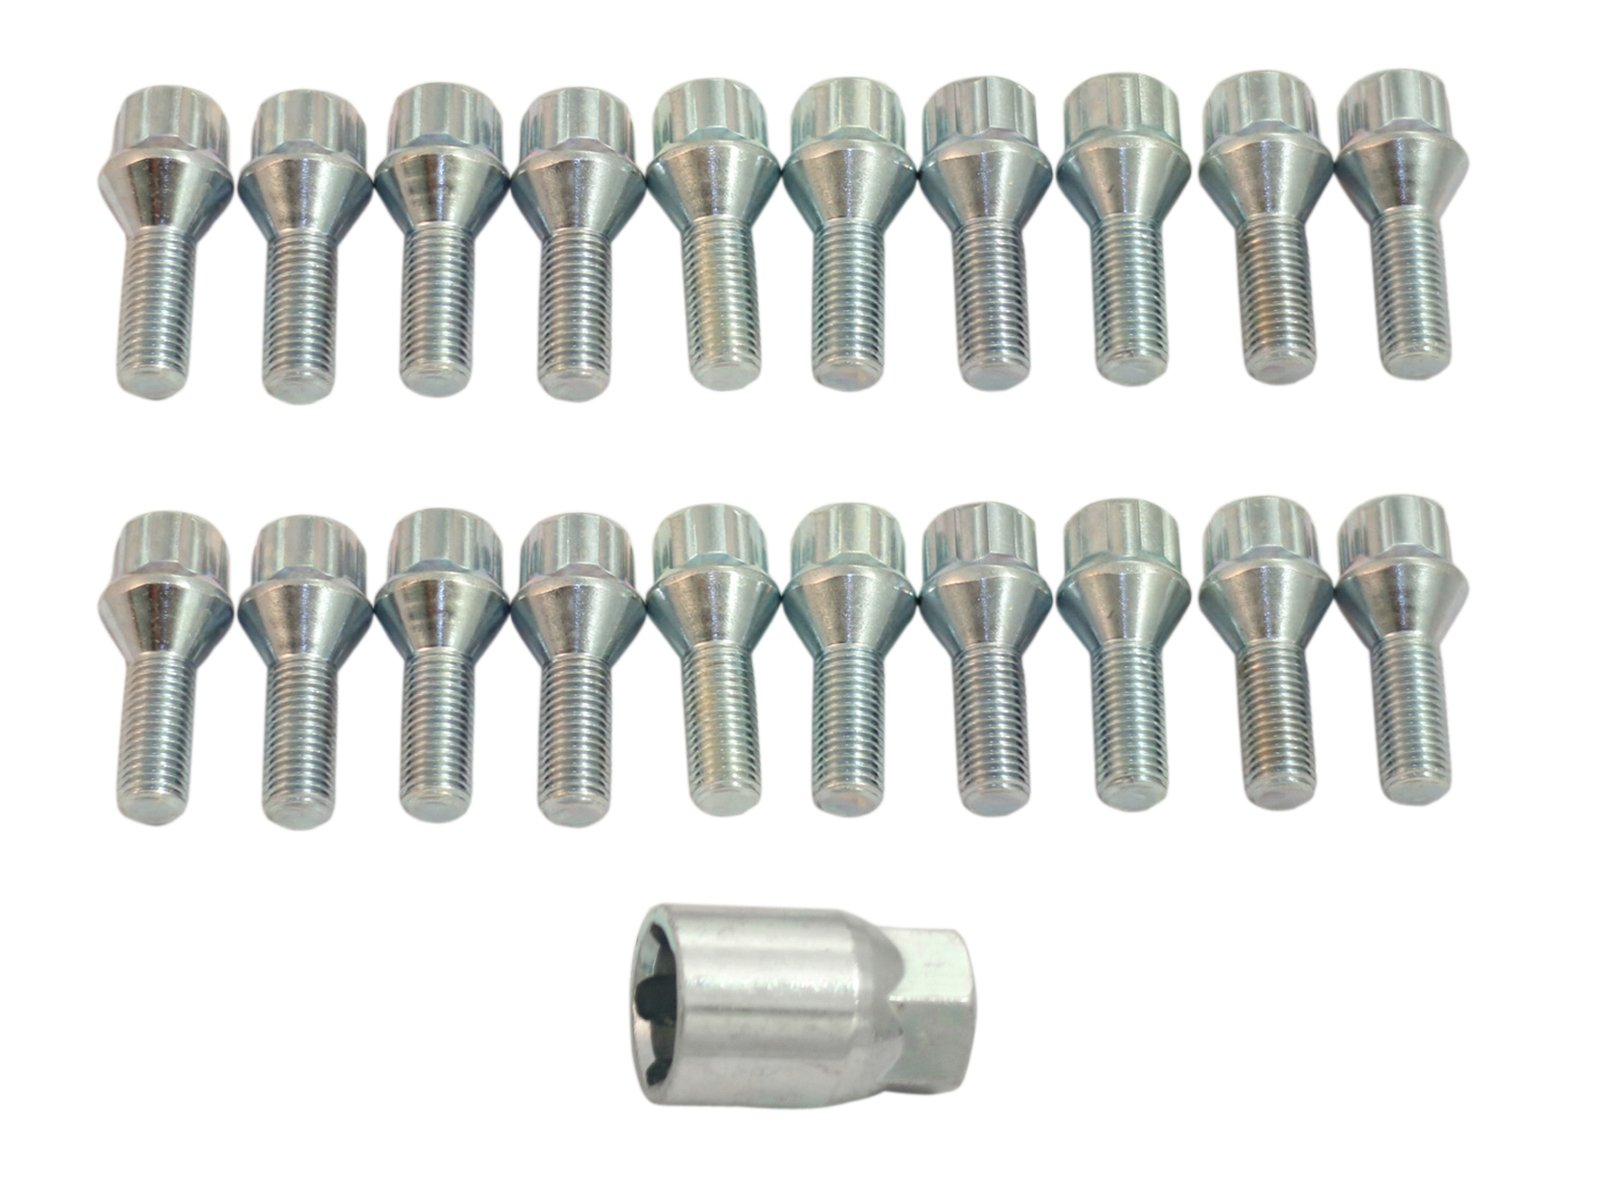 20pc Locking Spline Silver Lug Bolts 12x1.5 w/Socket Key (26mm OEM Shank Length) Cone Seat for many BMWs: 128i 135i 318i 320i 325i 328i 335i M3 525i 528i 530i 535i M5 Z3 Z4 E36 E46 E60 E90 E92 E93